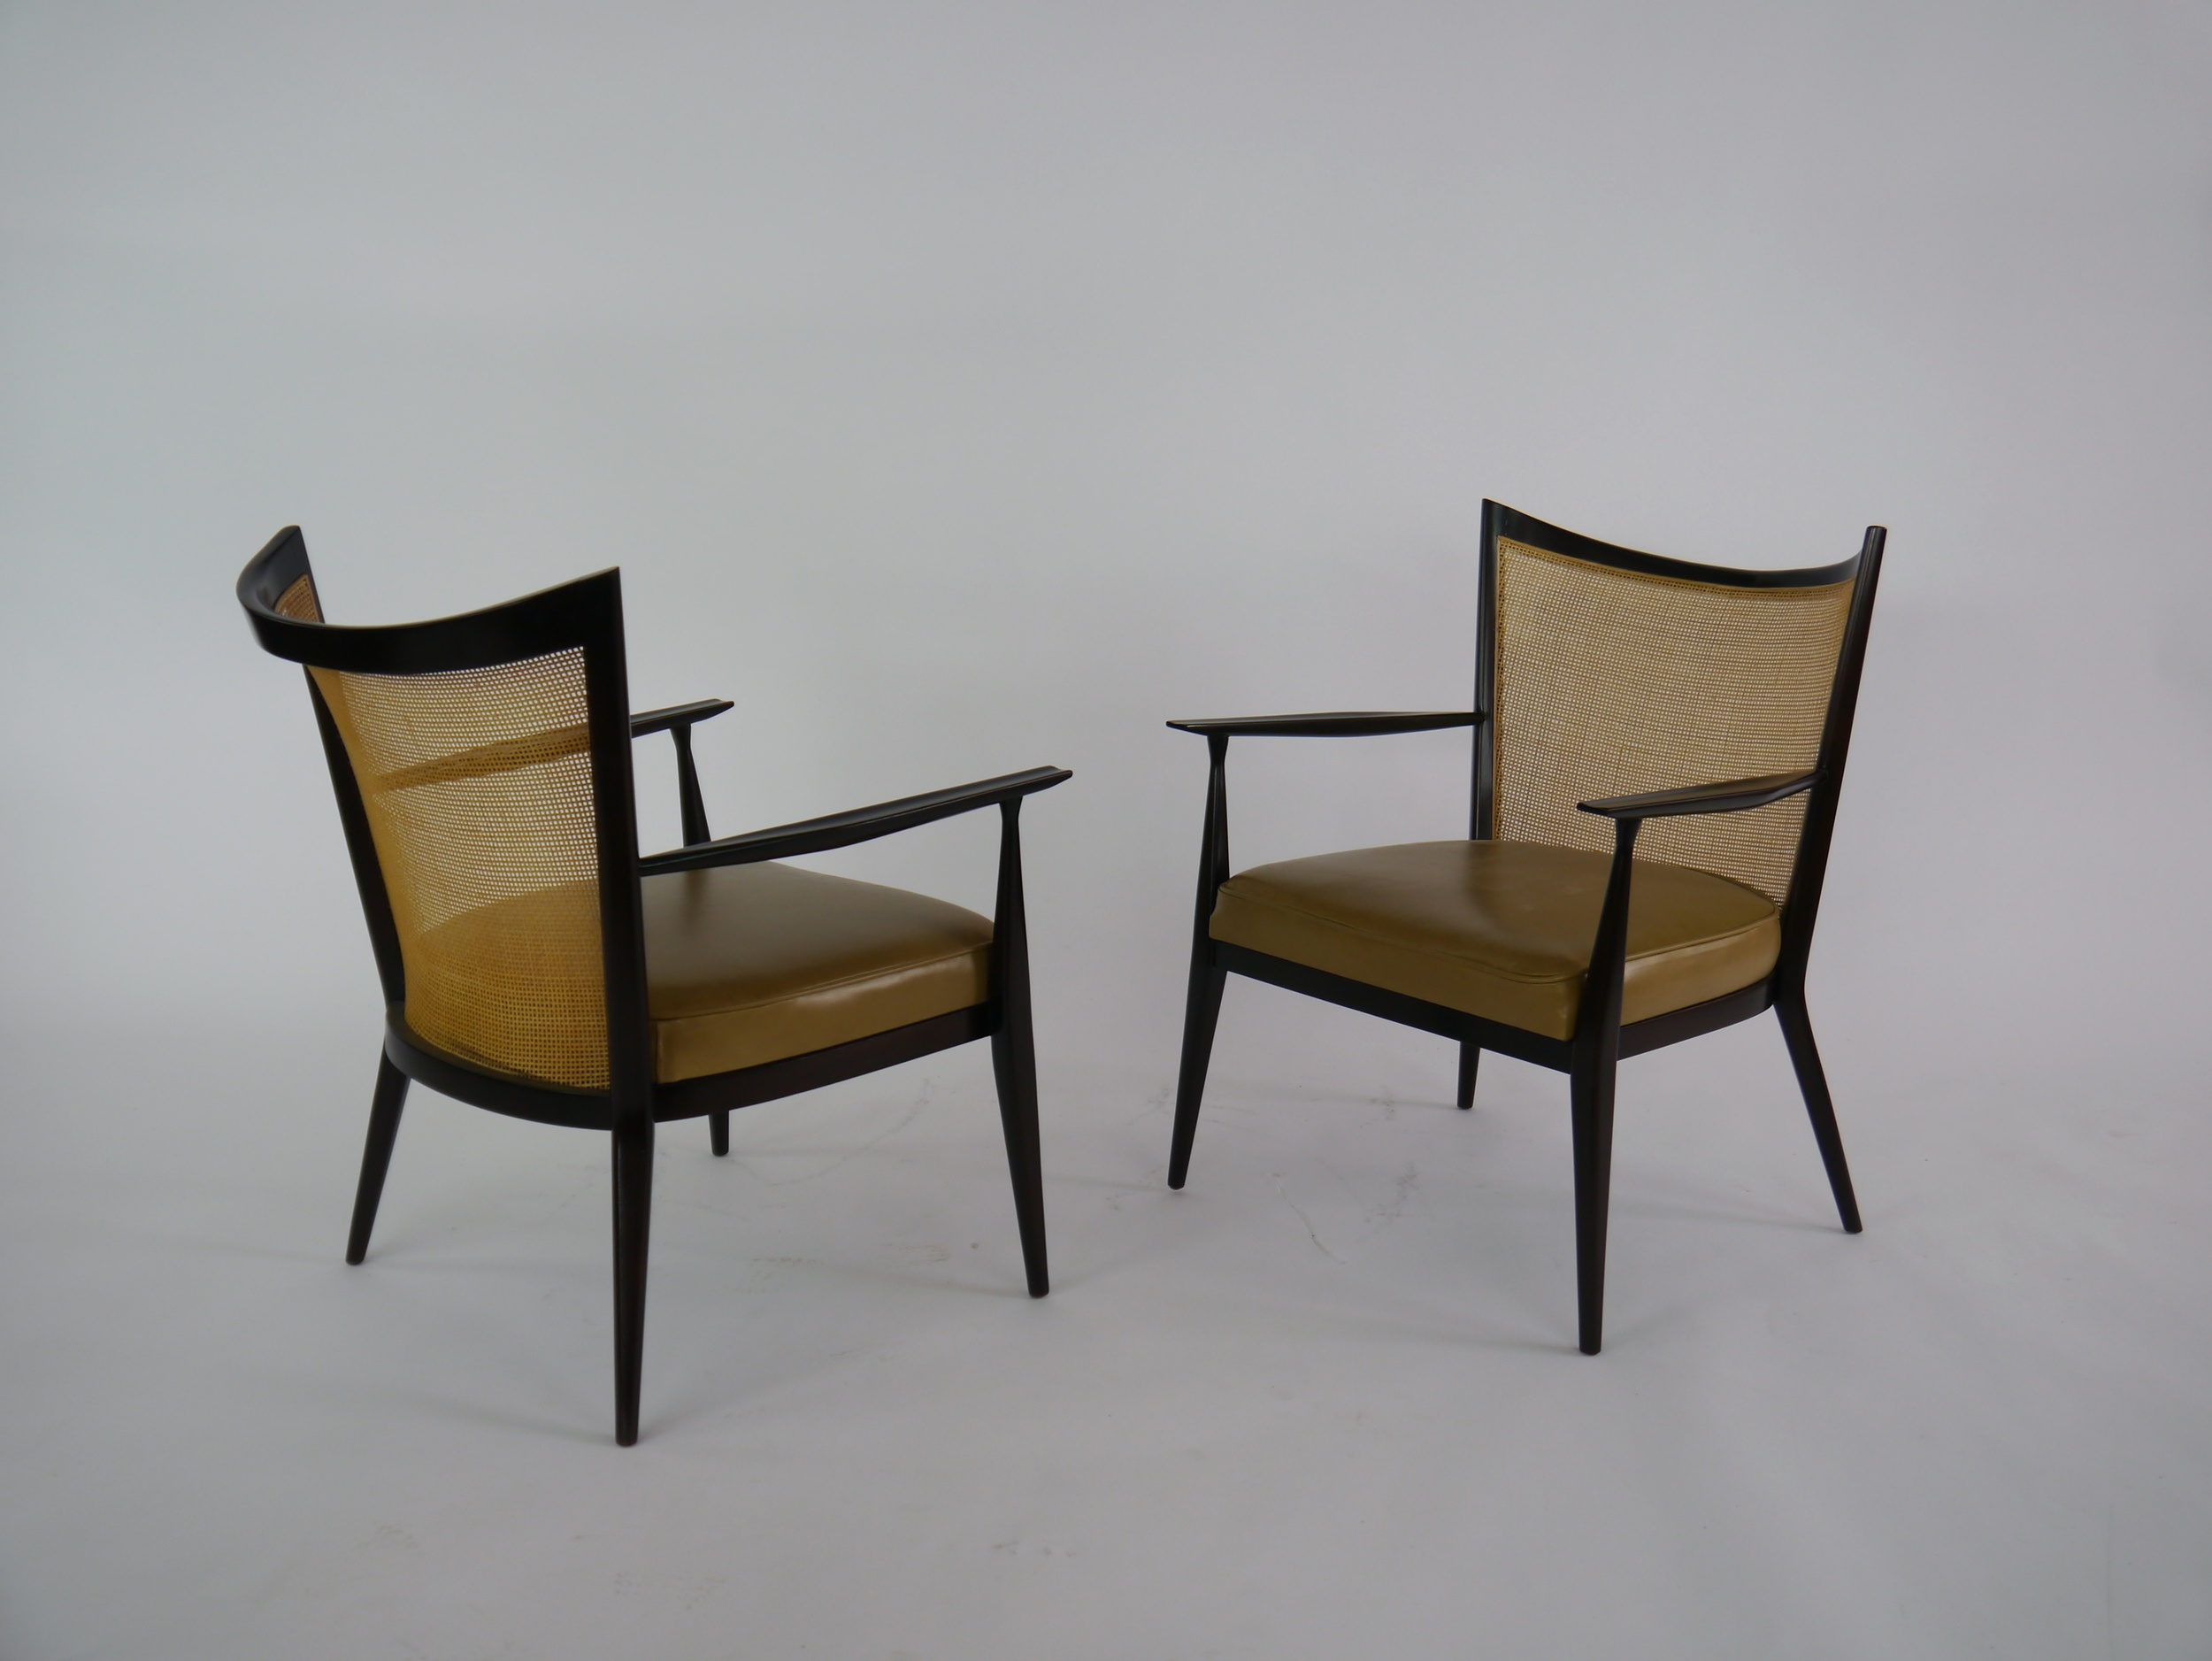 Paul Mccobb Chairs Elegant Lounge Chairs In Cane And Leather By Paul Mccobb